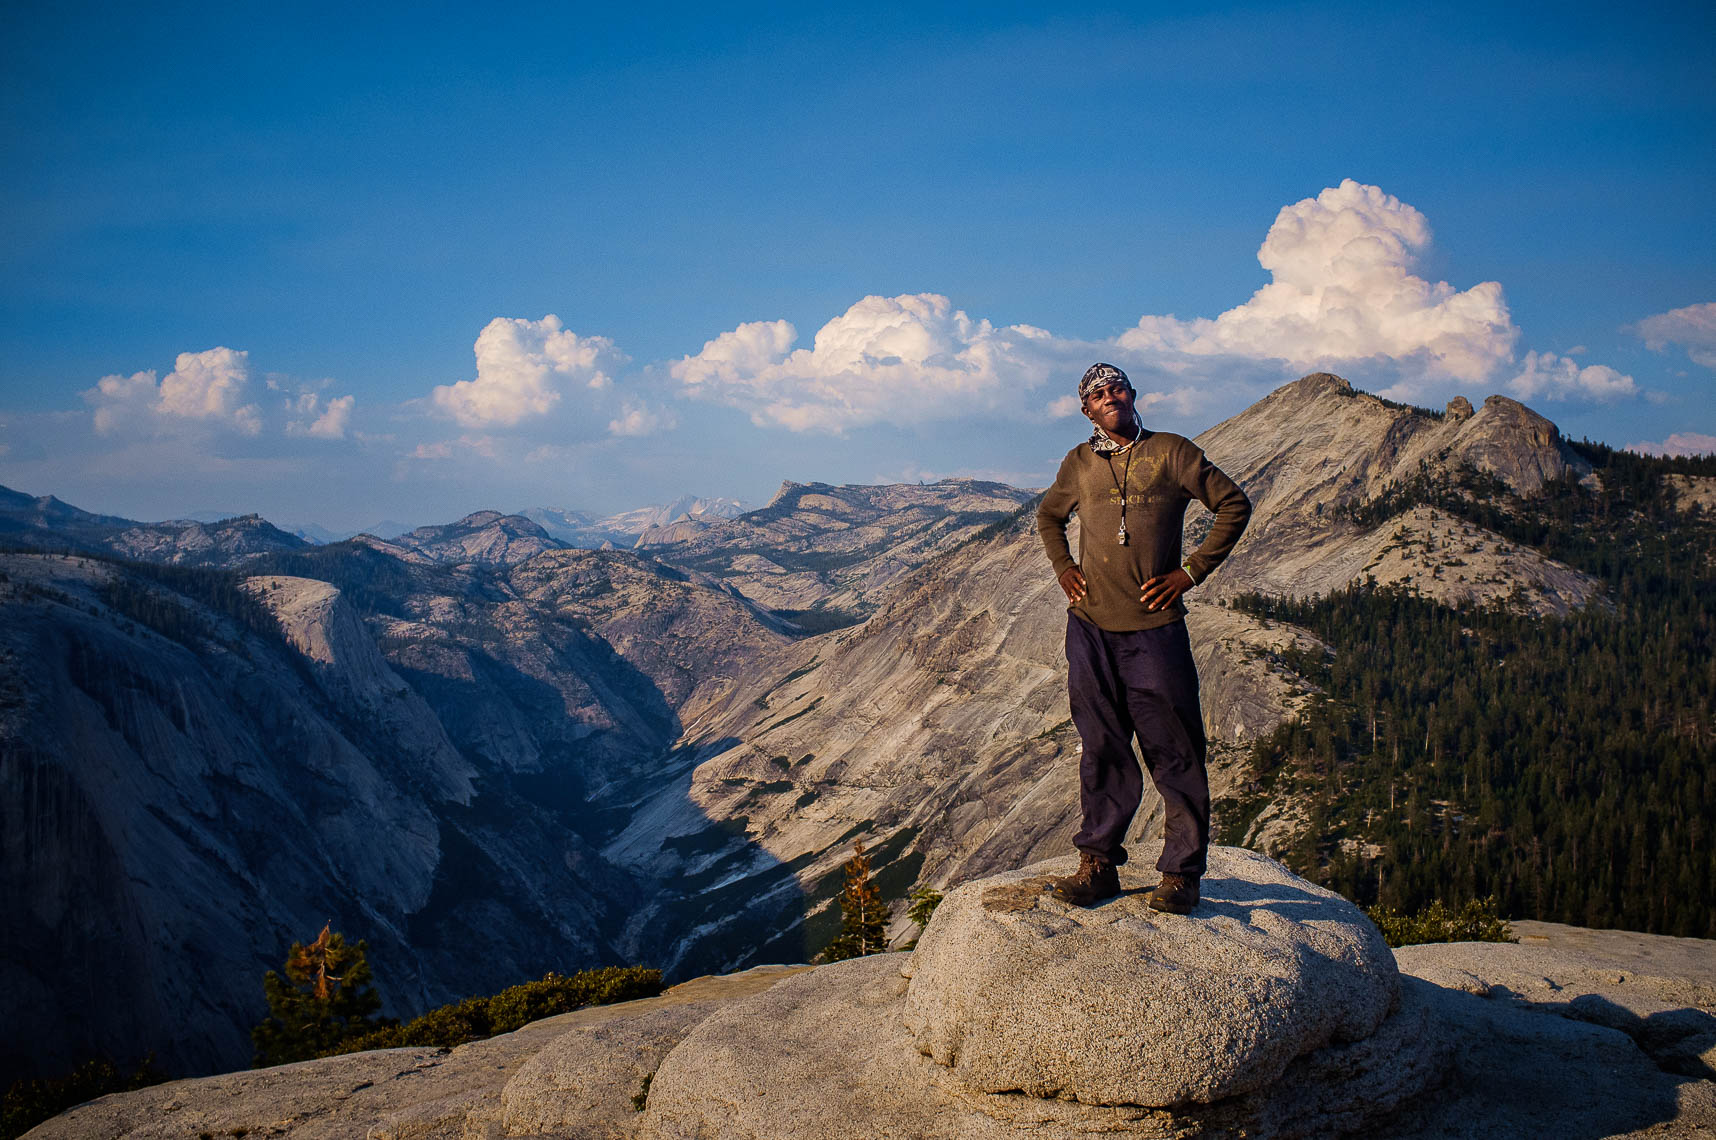 patrick_cavan_brown_woods_project_yosemite_camping_hiking_backpacking-4882copy